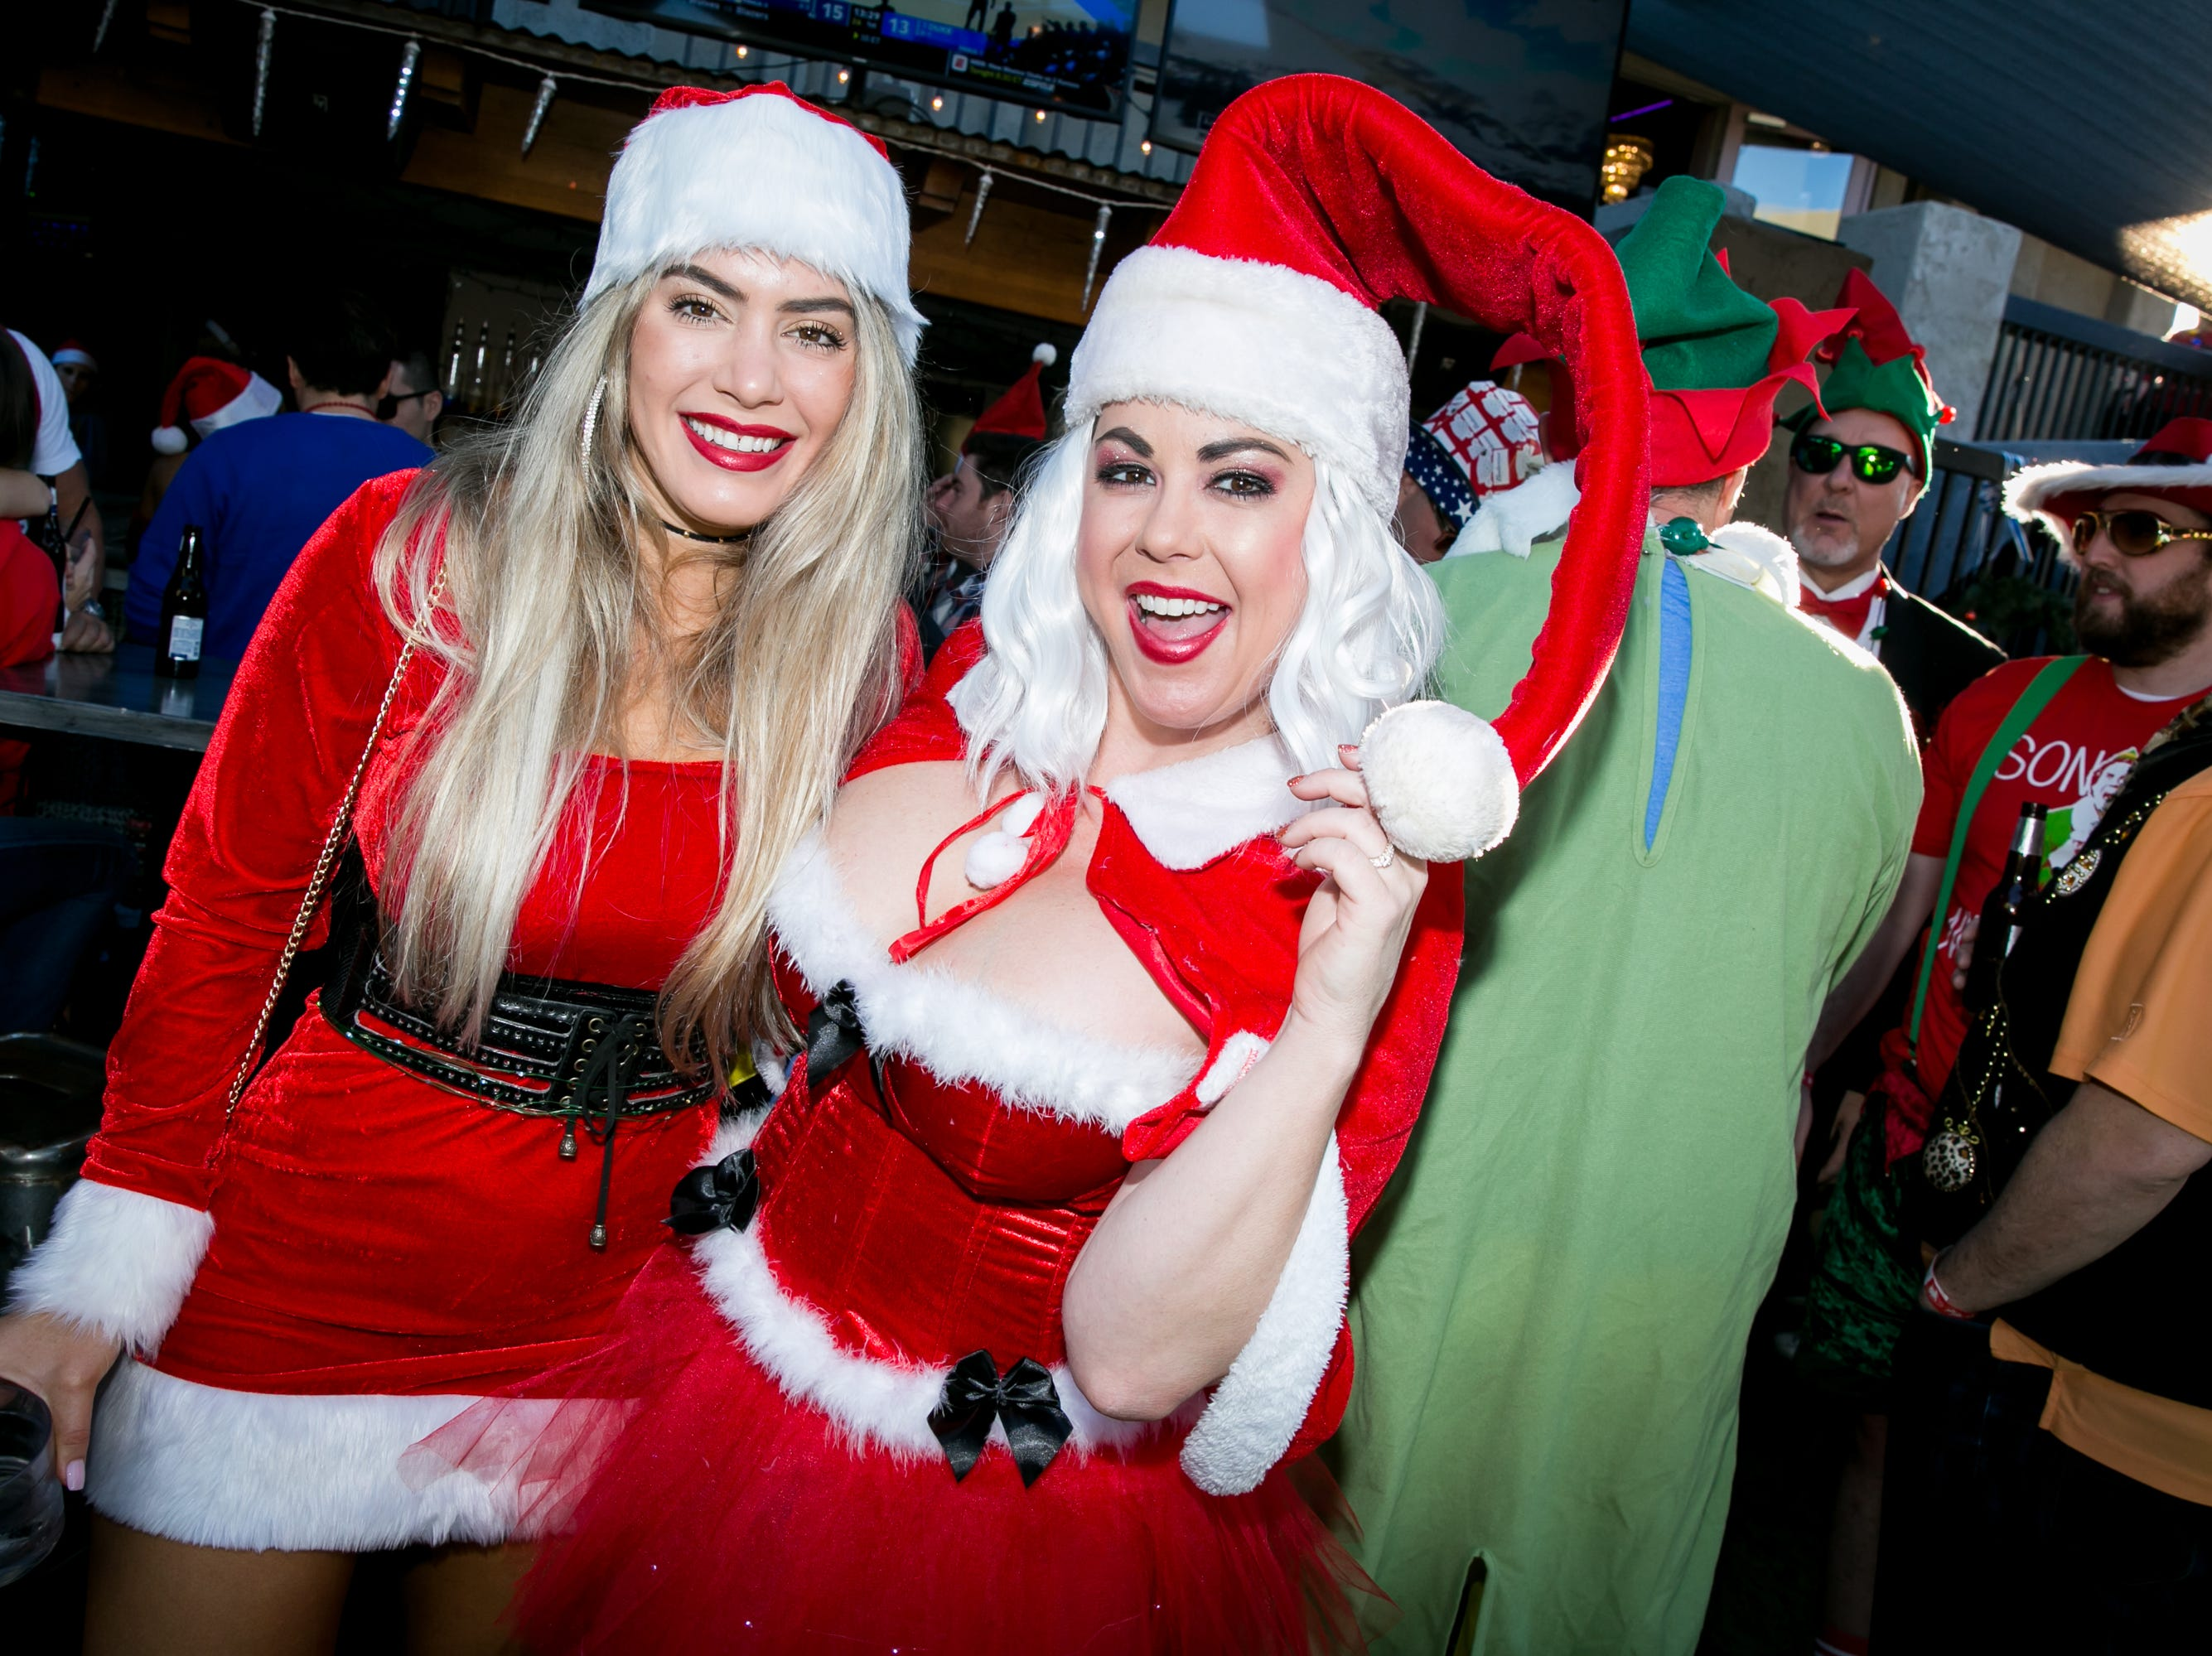 These ladies looked fantastic during the Scottsdale Santa Crawl at Wasted Grain on Saturday, December 8, 2018.